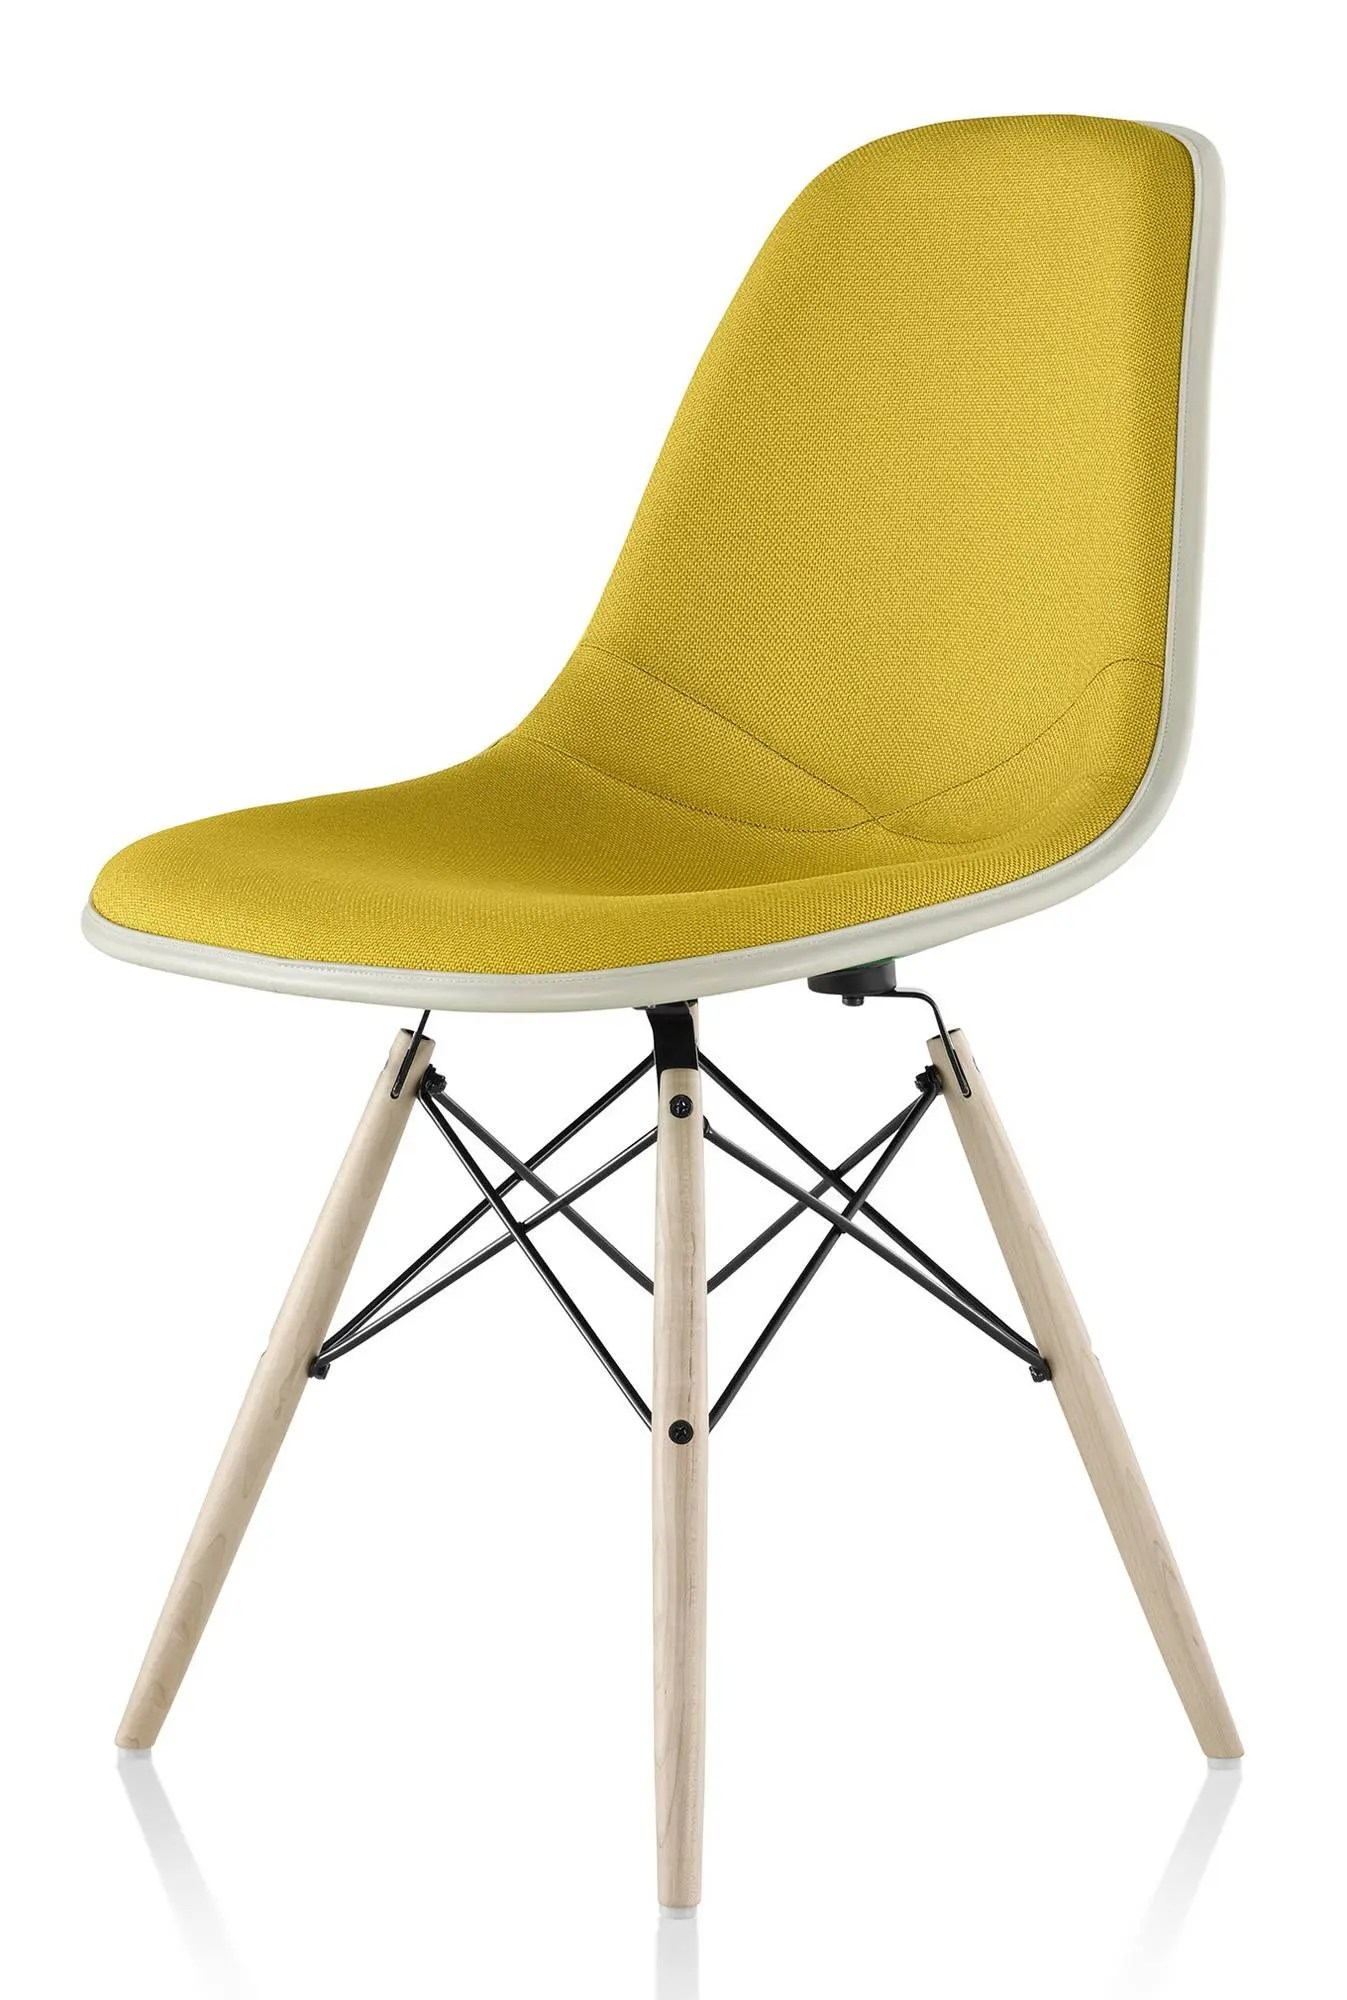 Herman Miller Eames Chairs Herman Miller Eames Molded Fiberglass Side Chair